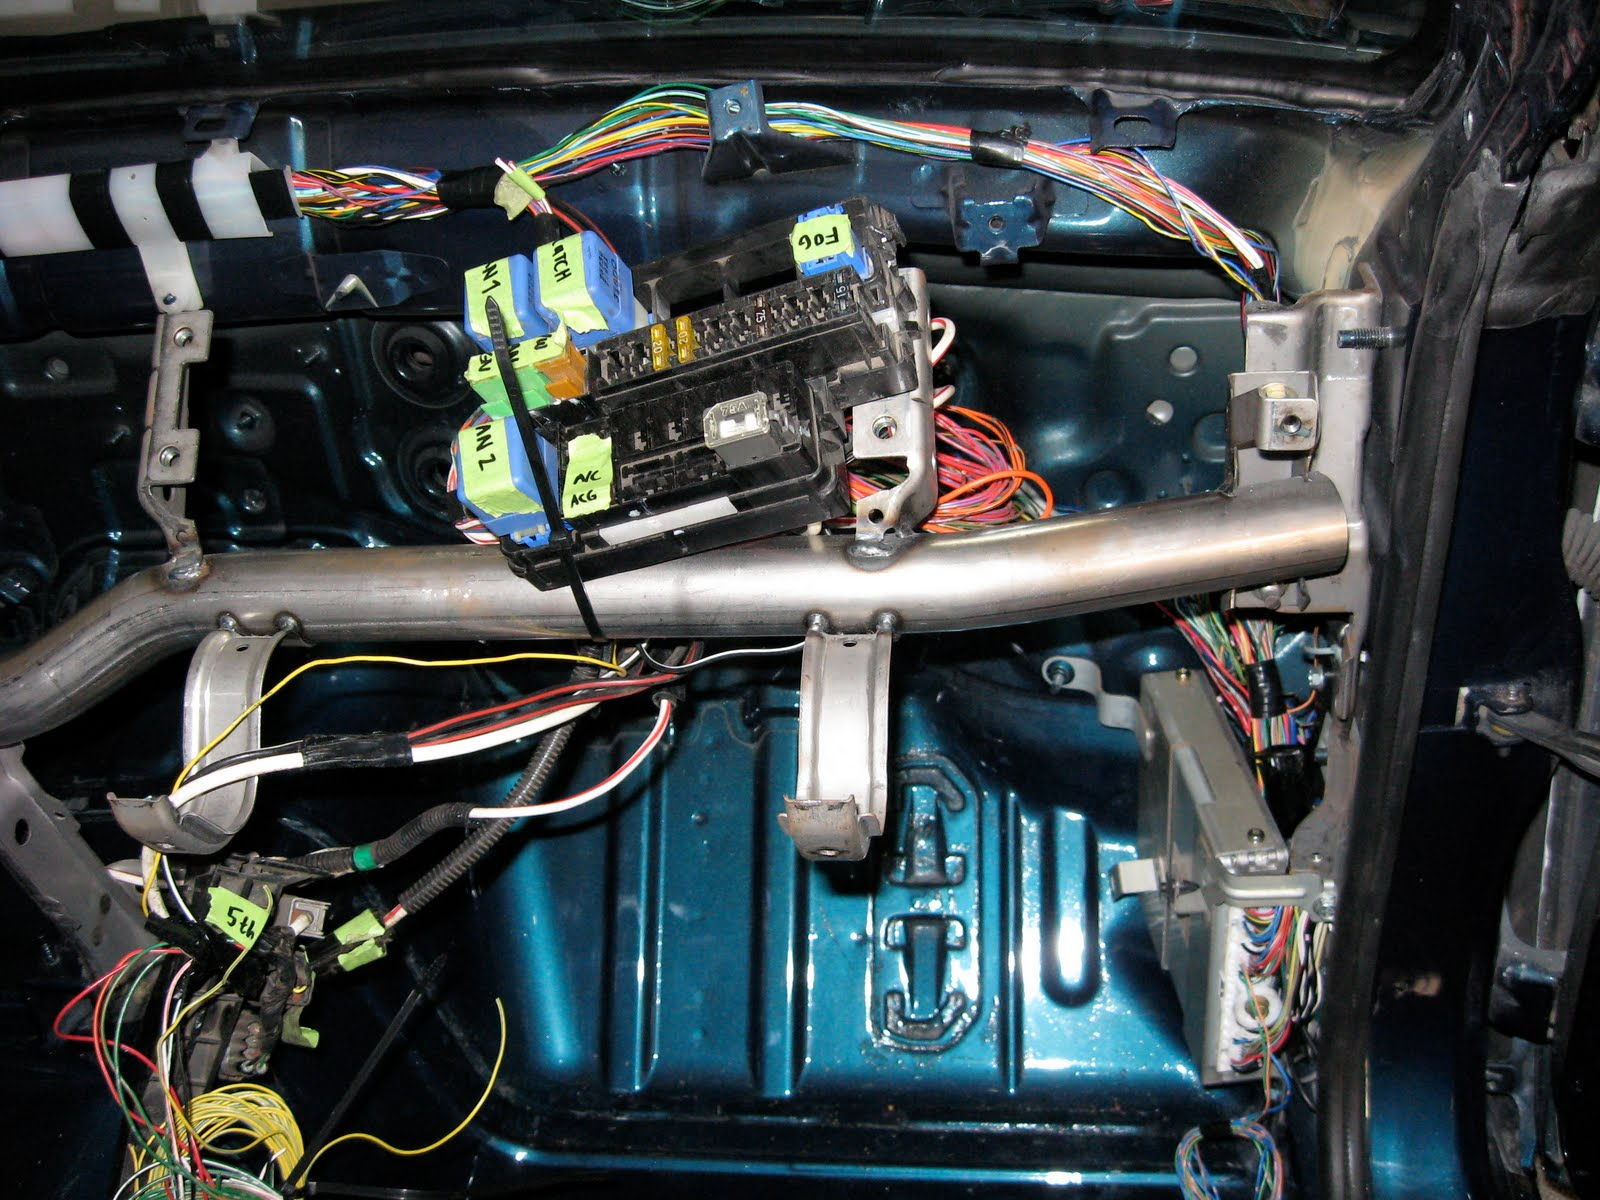 s14 fuse box tuck wiring diagram data valnissan s14 fuse box relocation schema wiring diagram 95 [ 1600 x 1200 Pixel ]